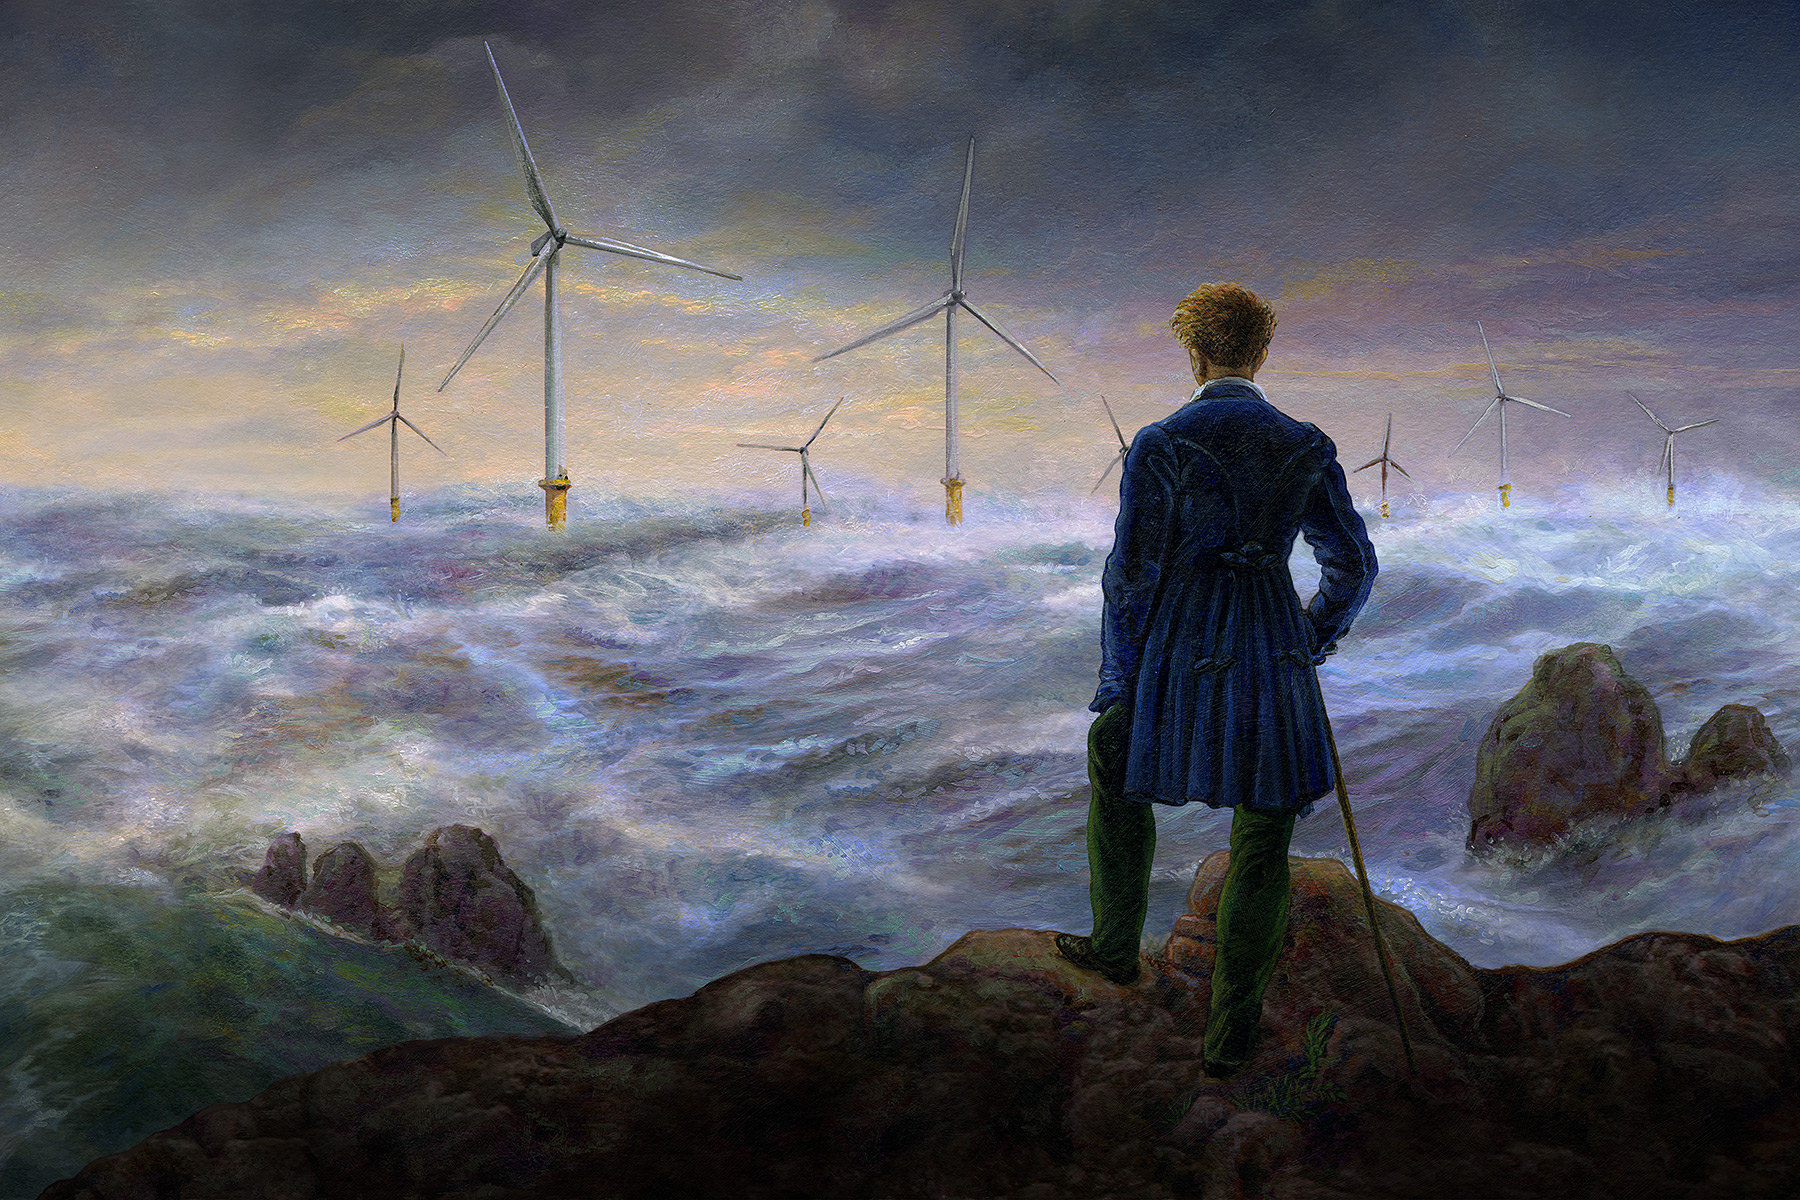 Our homage to Caspar David Friedrich featuring a seascape dotted with wind turbines.